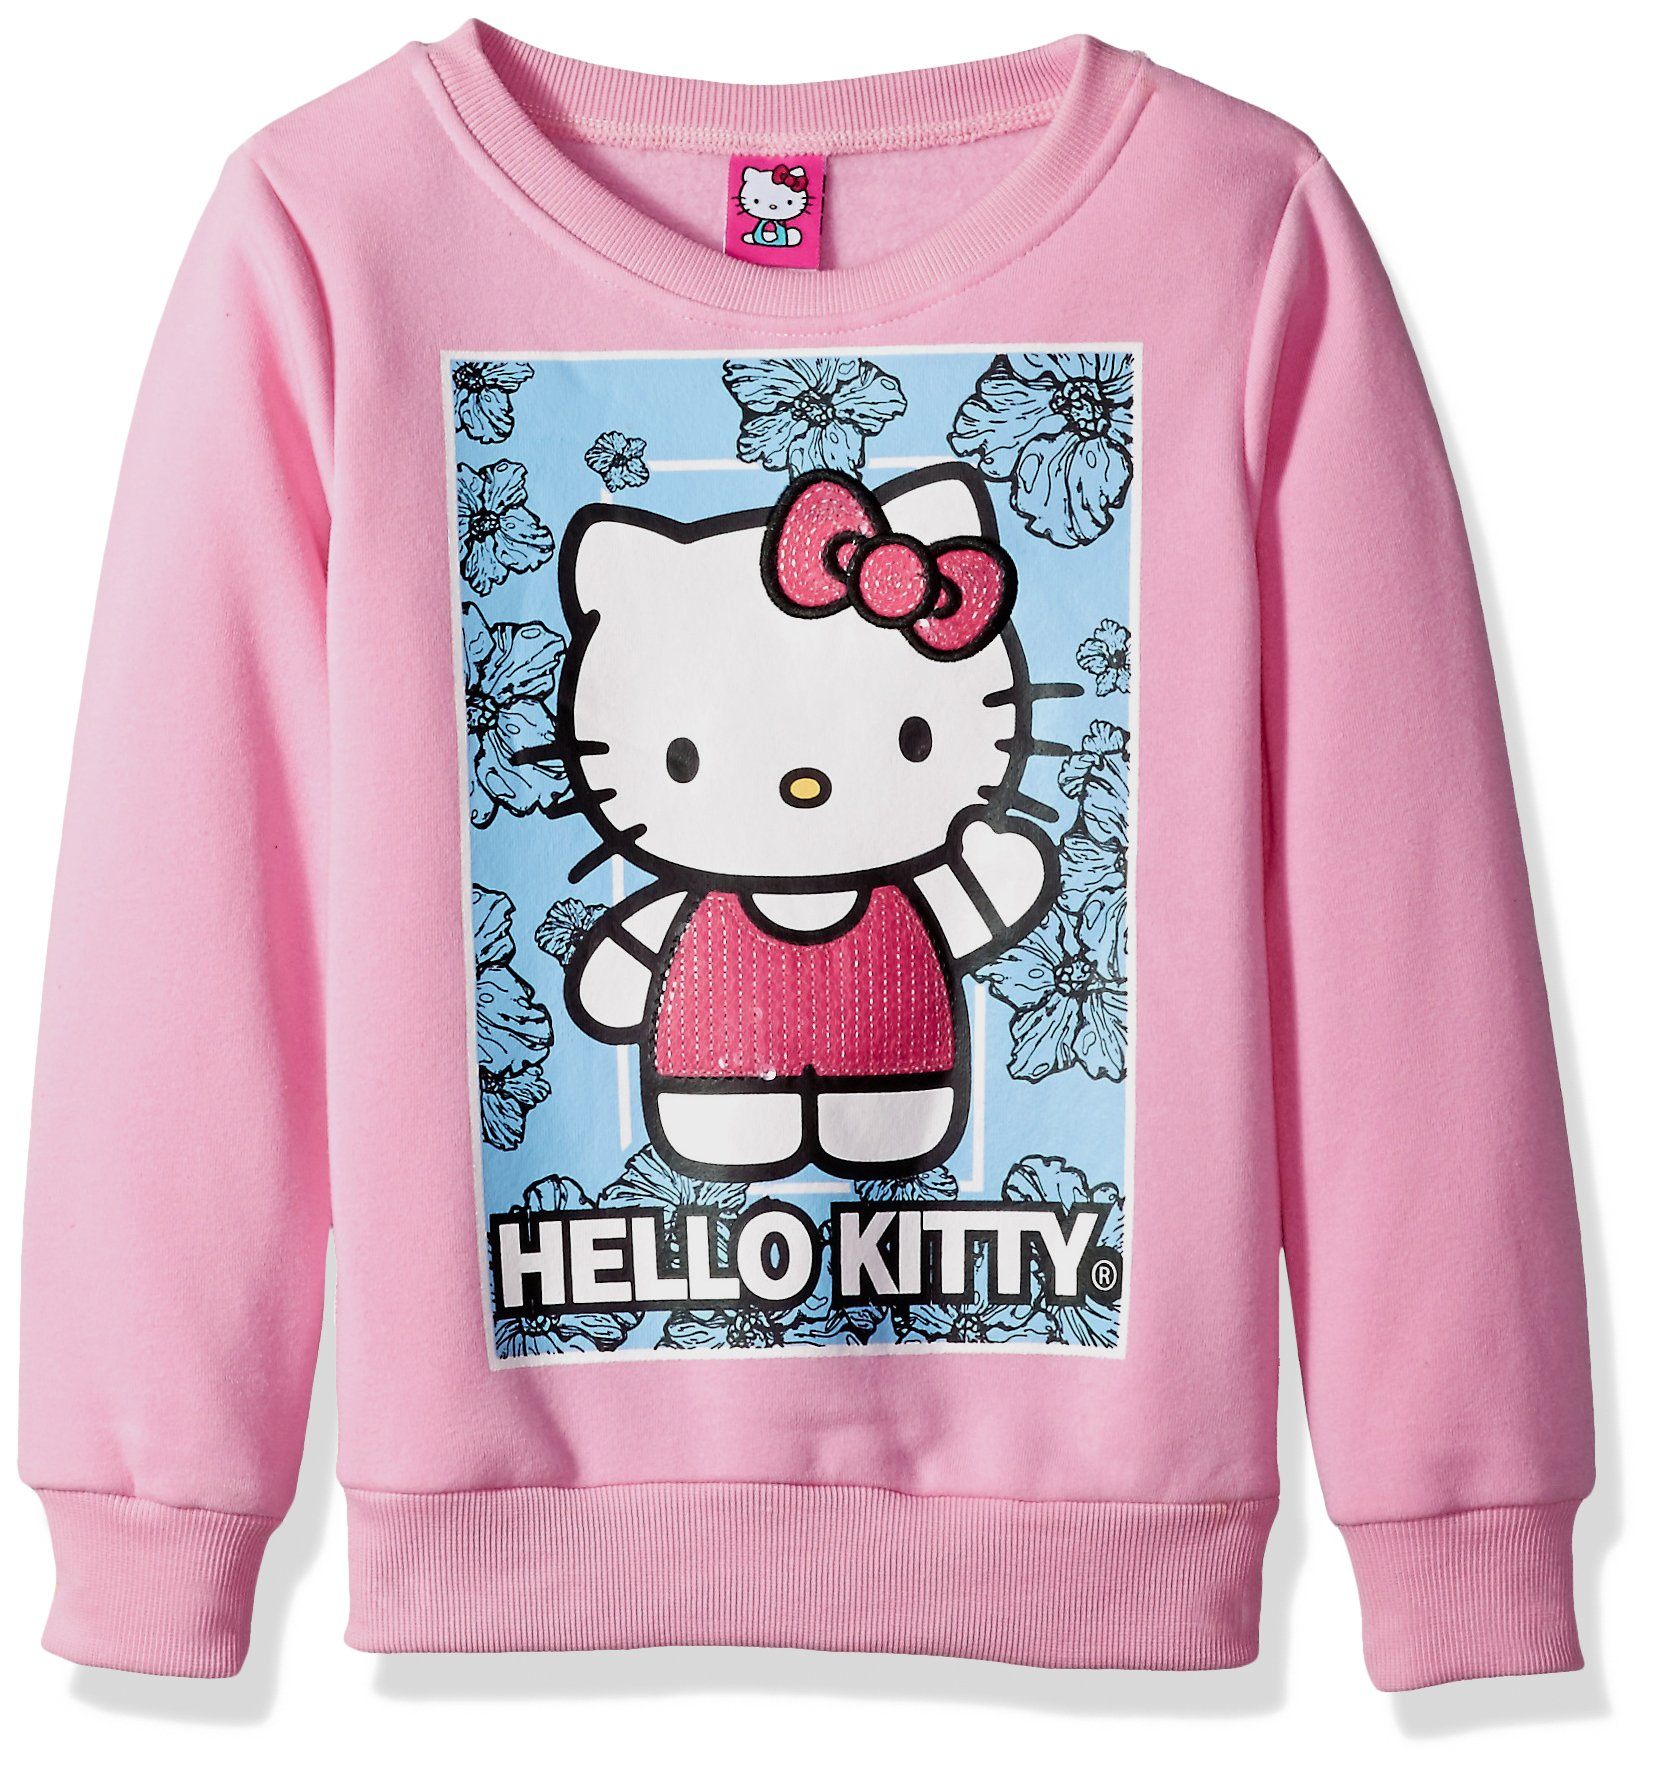 Hello Kitty Big Girls' Sweatshirt with Sequins and Lace Details, Pink, 8 by Hello Kitty (Image #1)